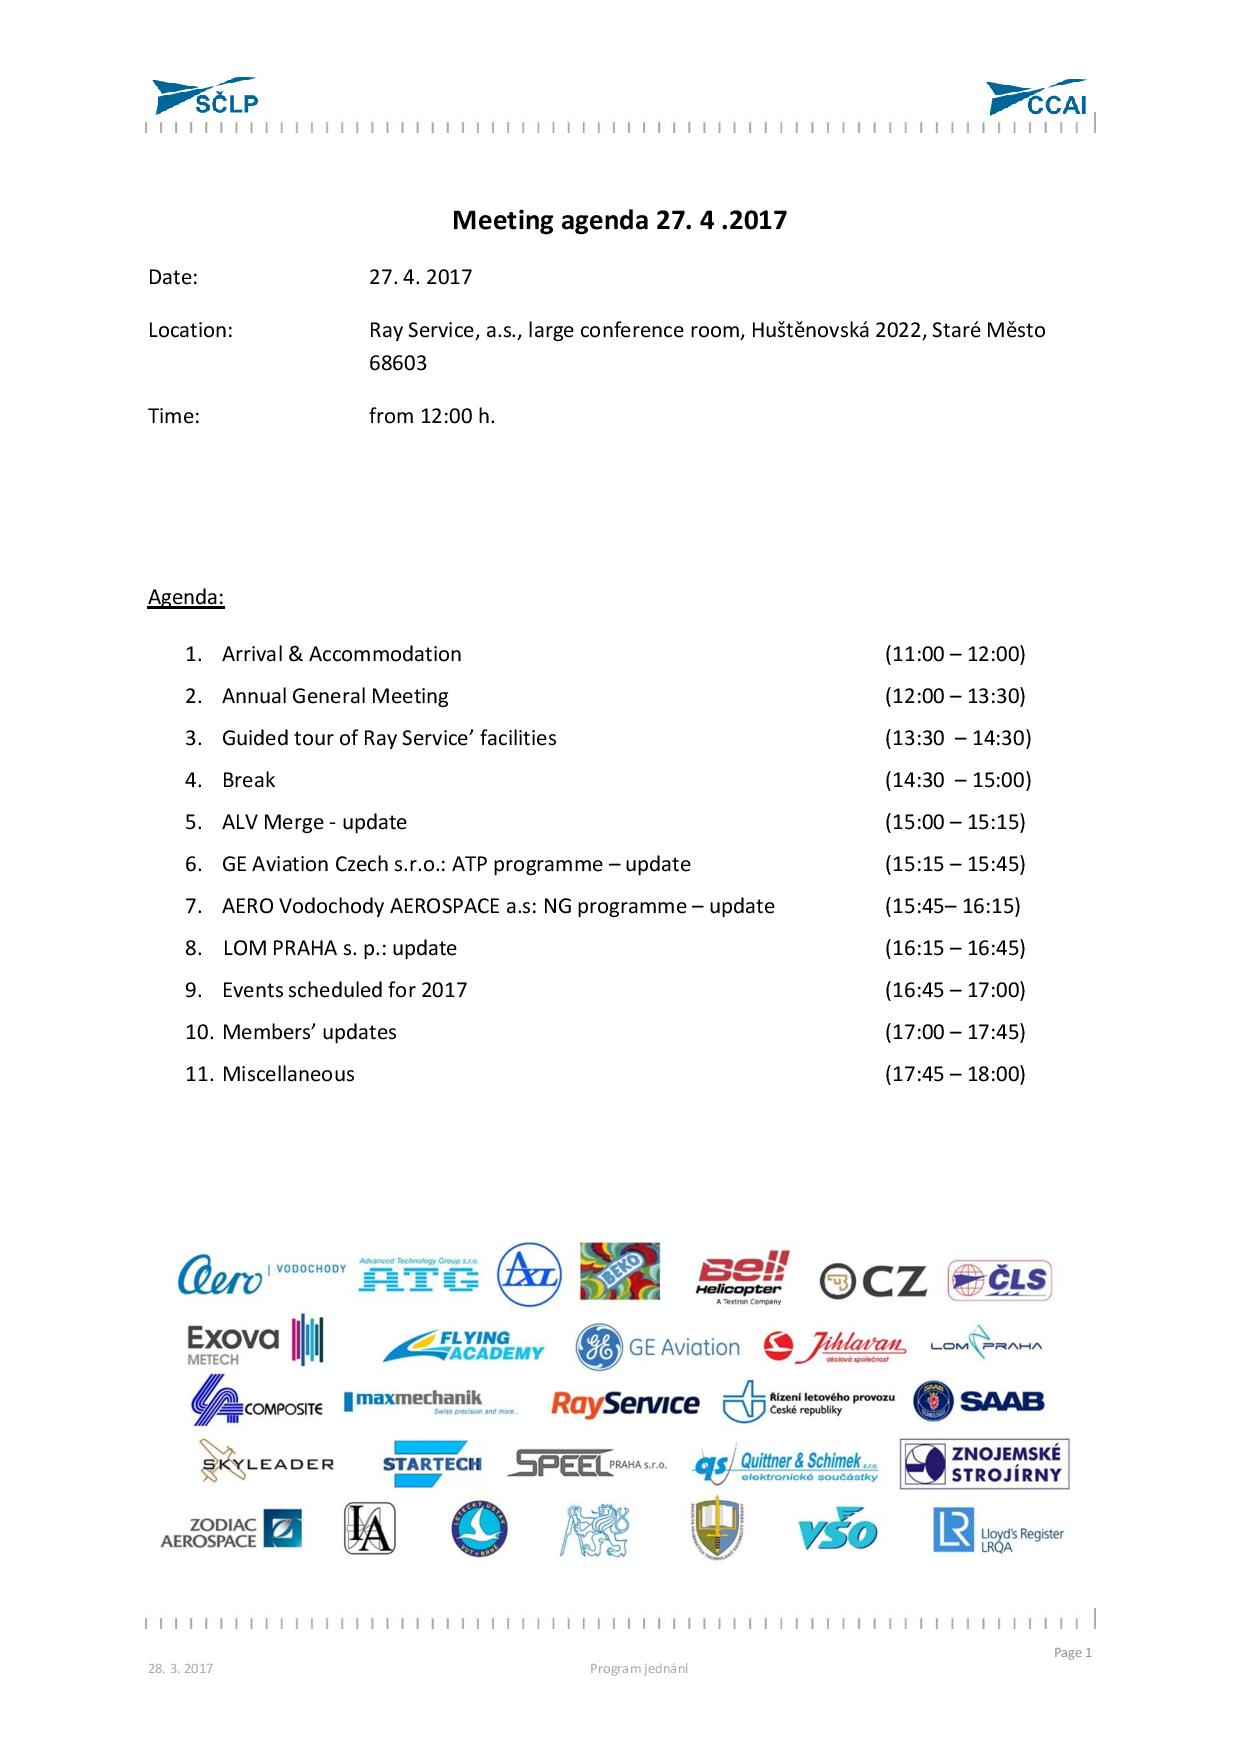 Wings Of Future Competiton For High School Students Svaz Eskho Camera Wiring Diagram Furthermore Security On April17 Agenda Meeting En 03 04 2017 Page 001